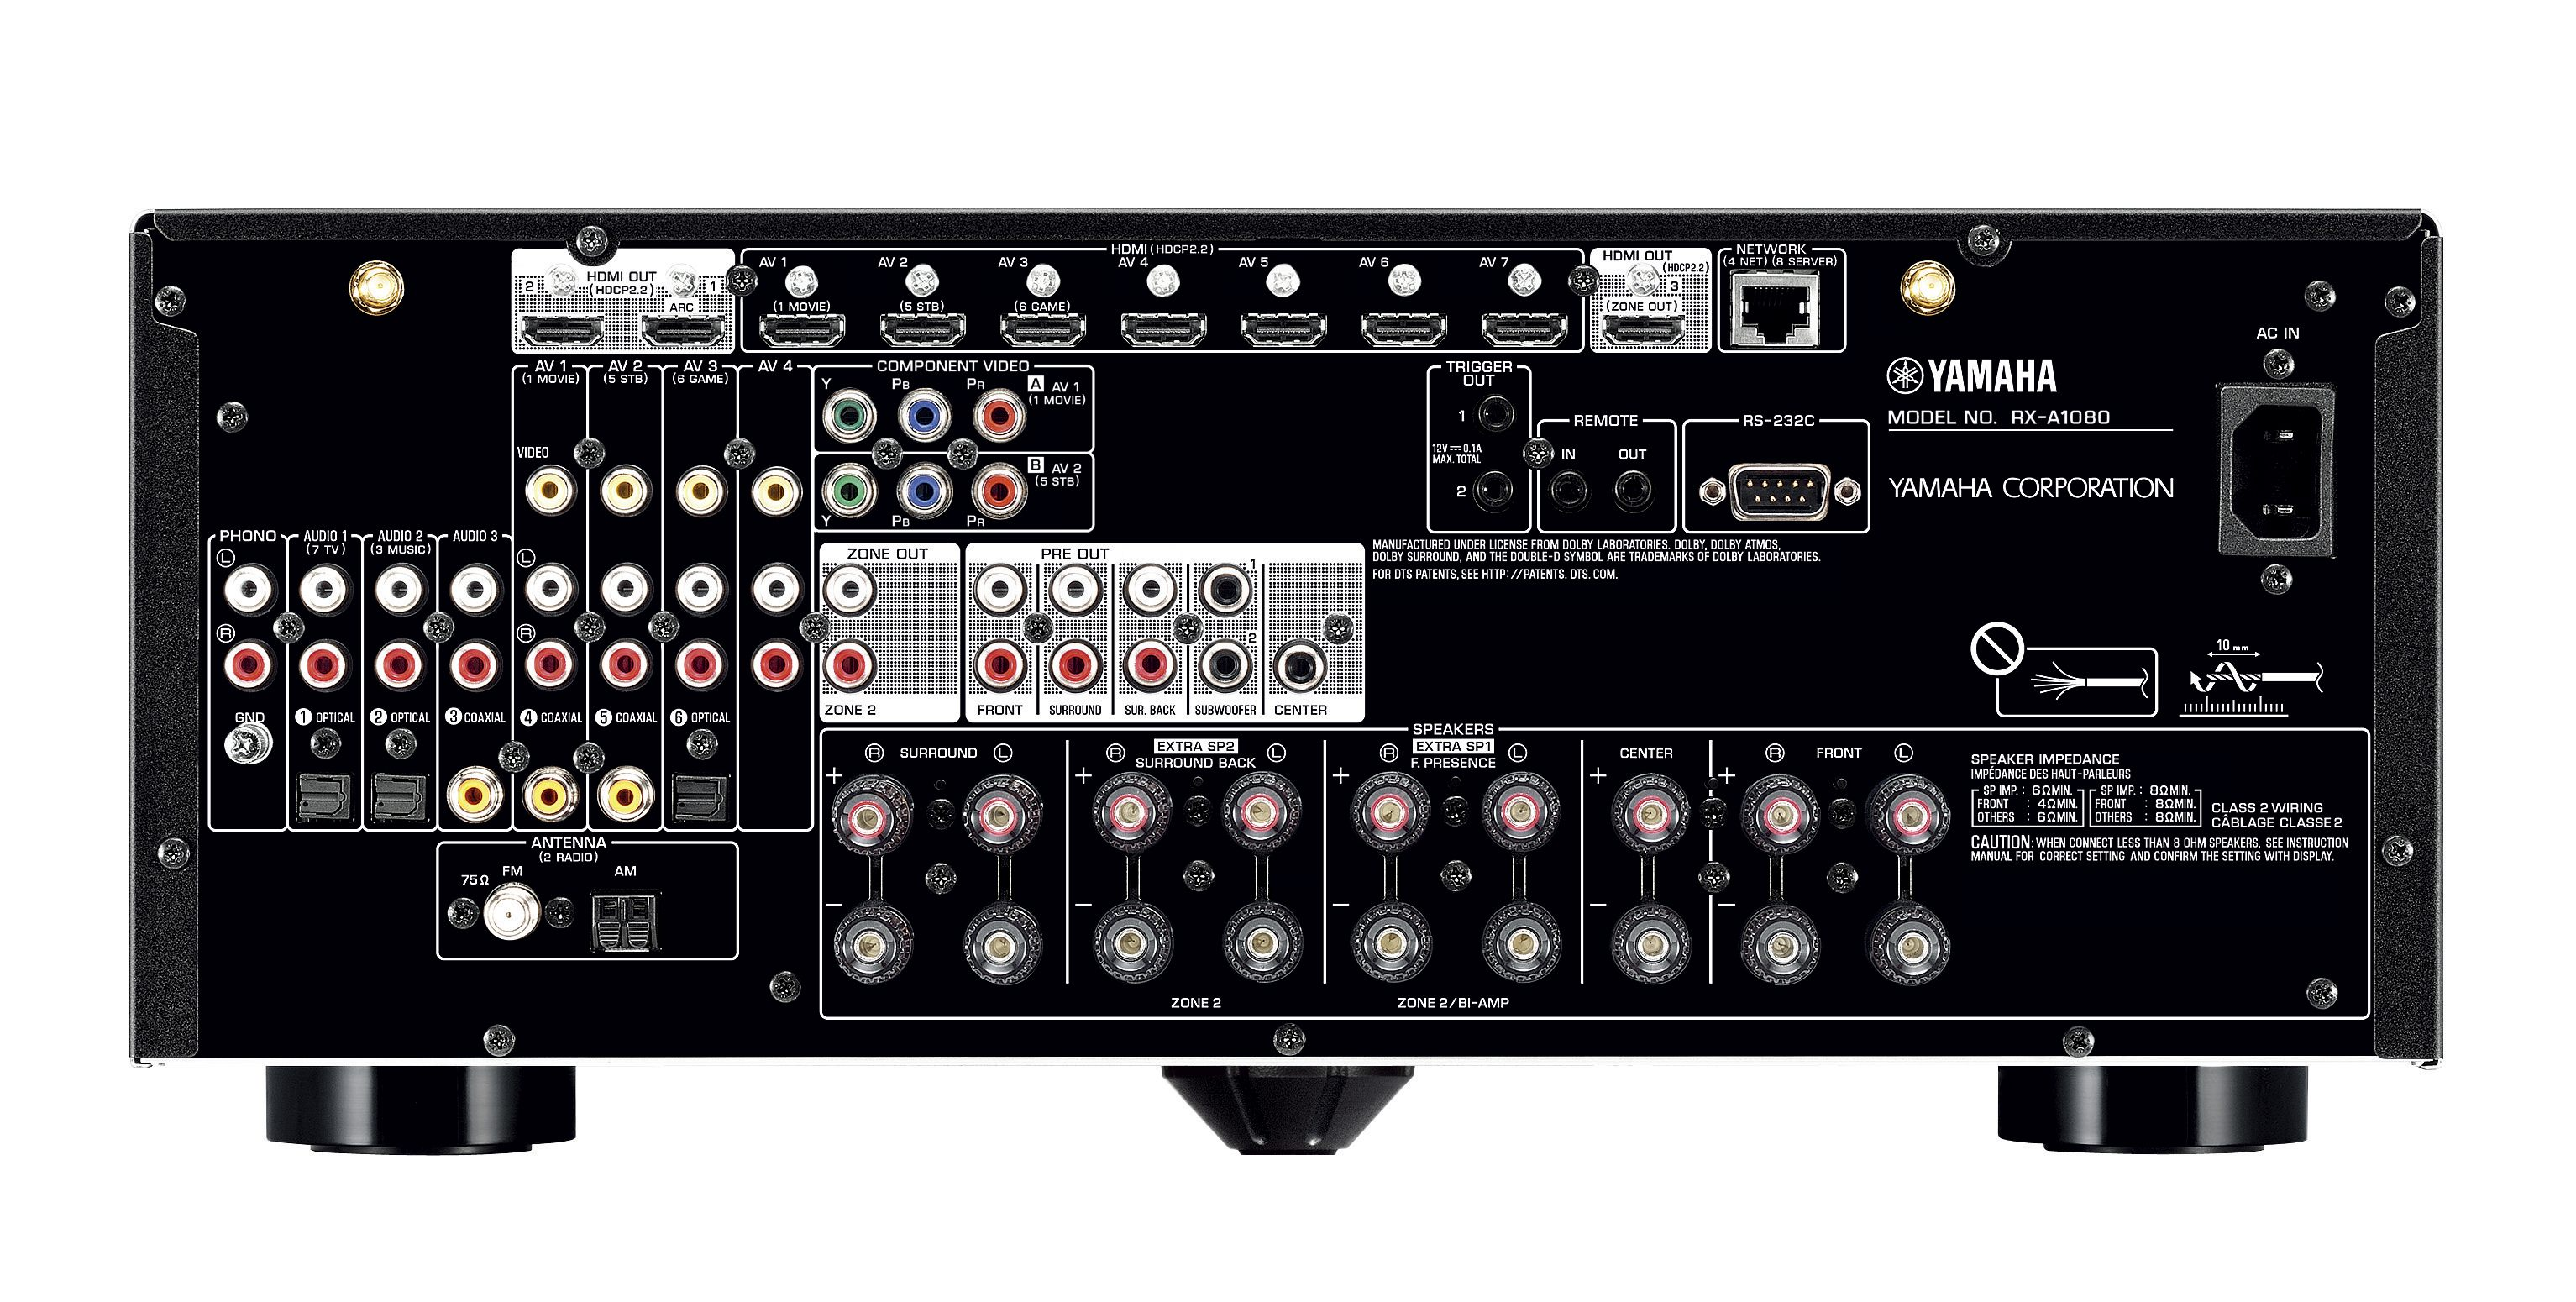 RX-A1080 - Support - AV Receivers - Audio & Visual